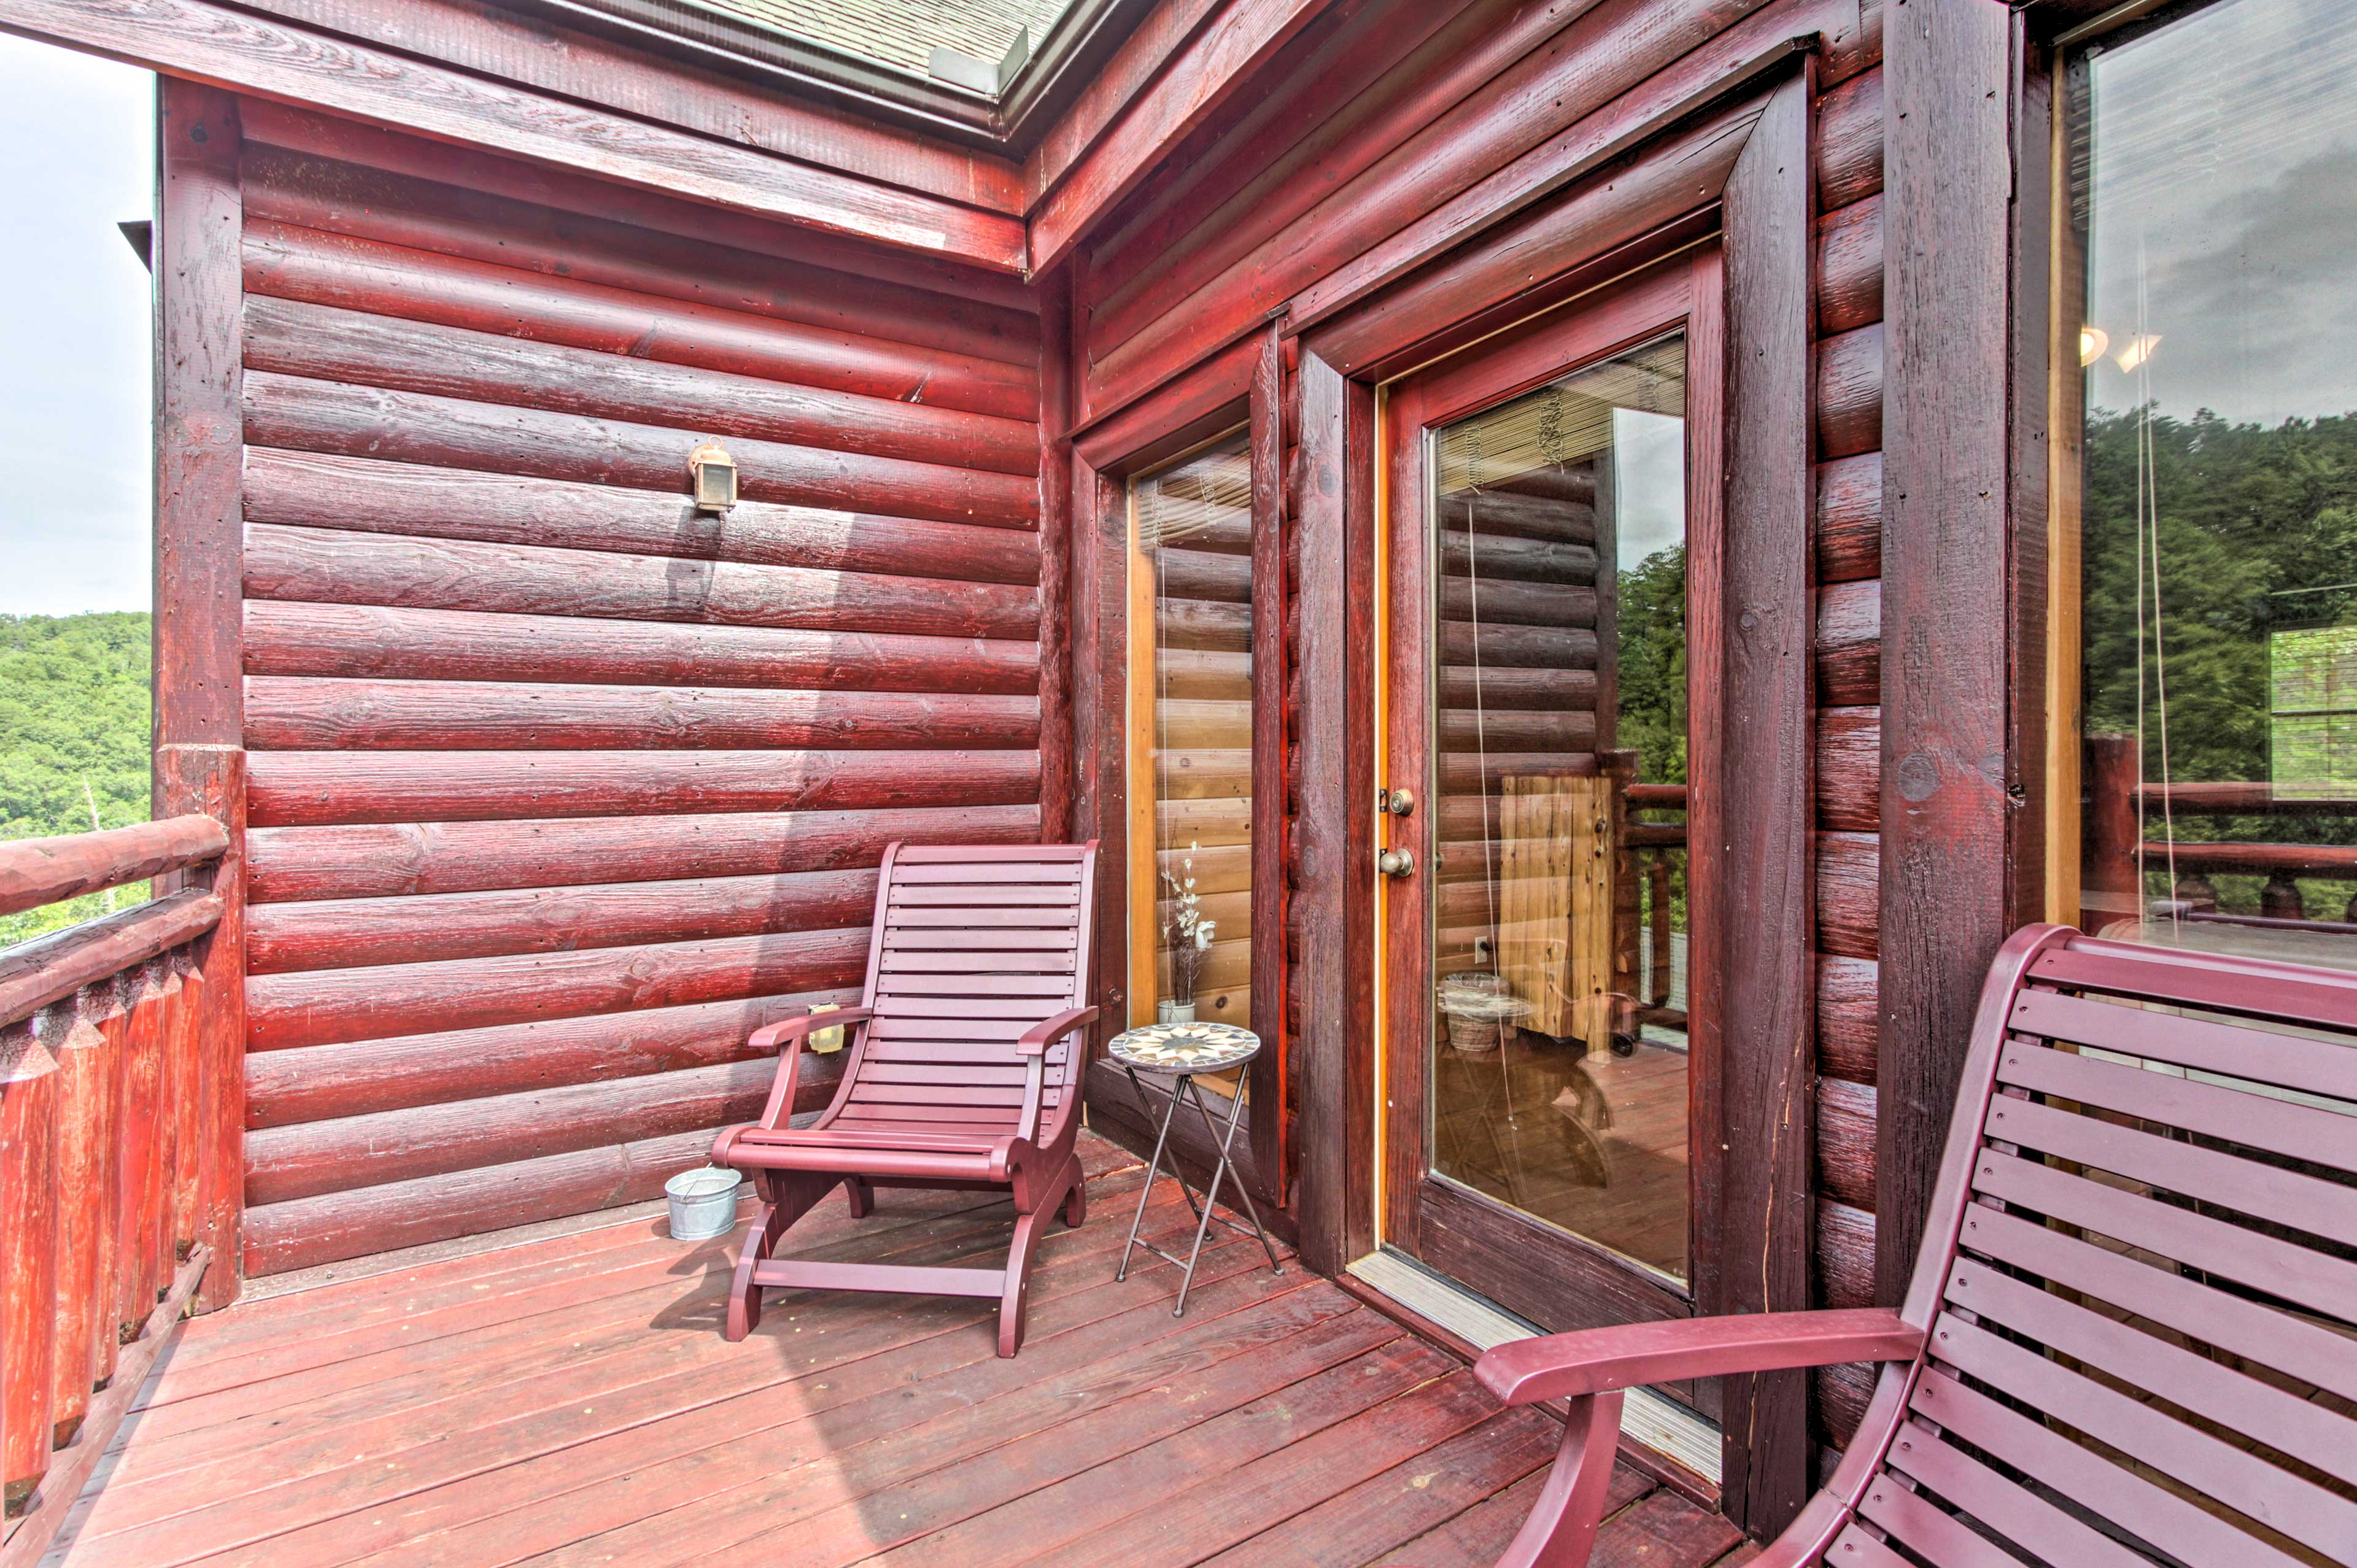 What more do you need a this cabin? You have everything here.